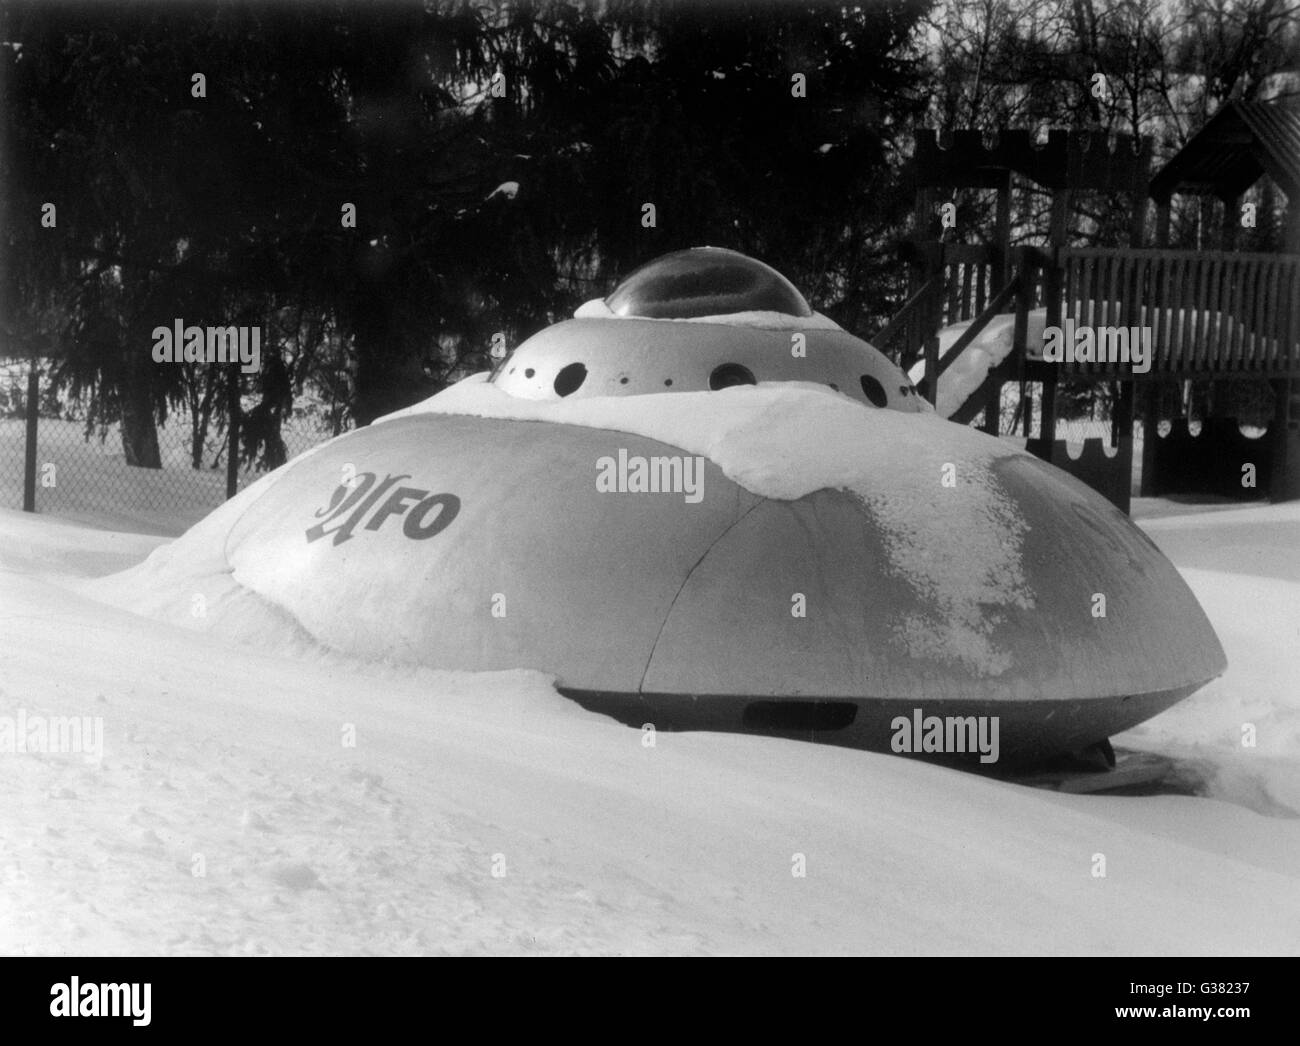 This flying saucer landed in  the village of Hessdalen, but  was snowed in by bad weather,  and its occupants had - Stock Image